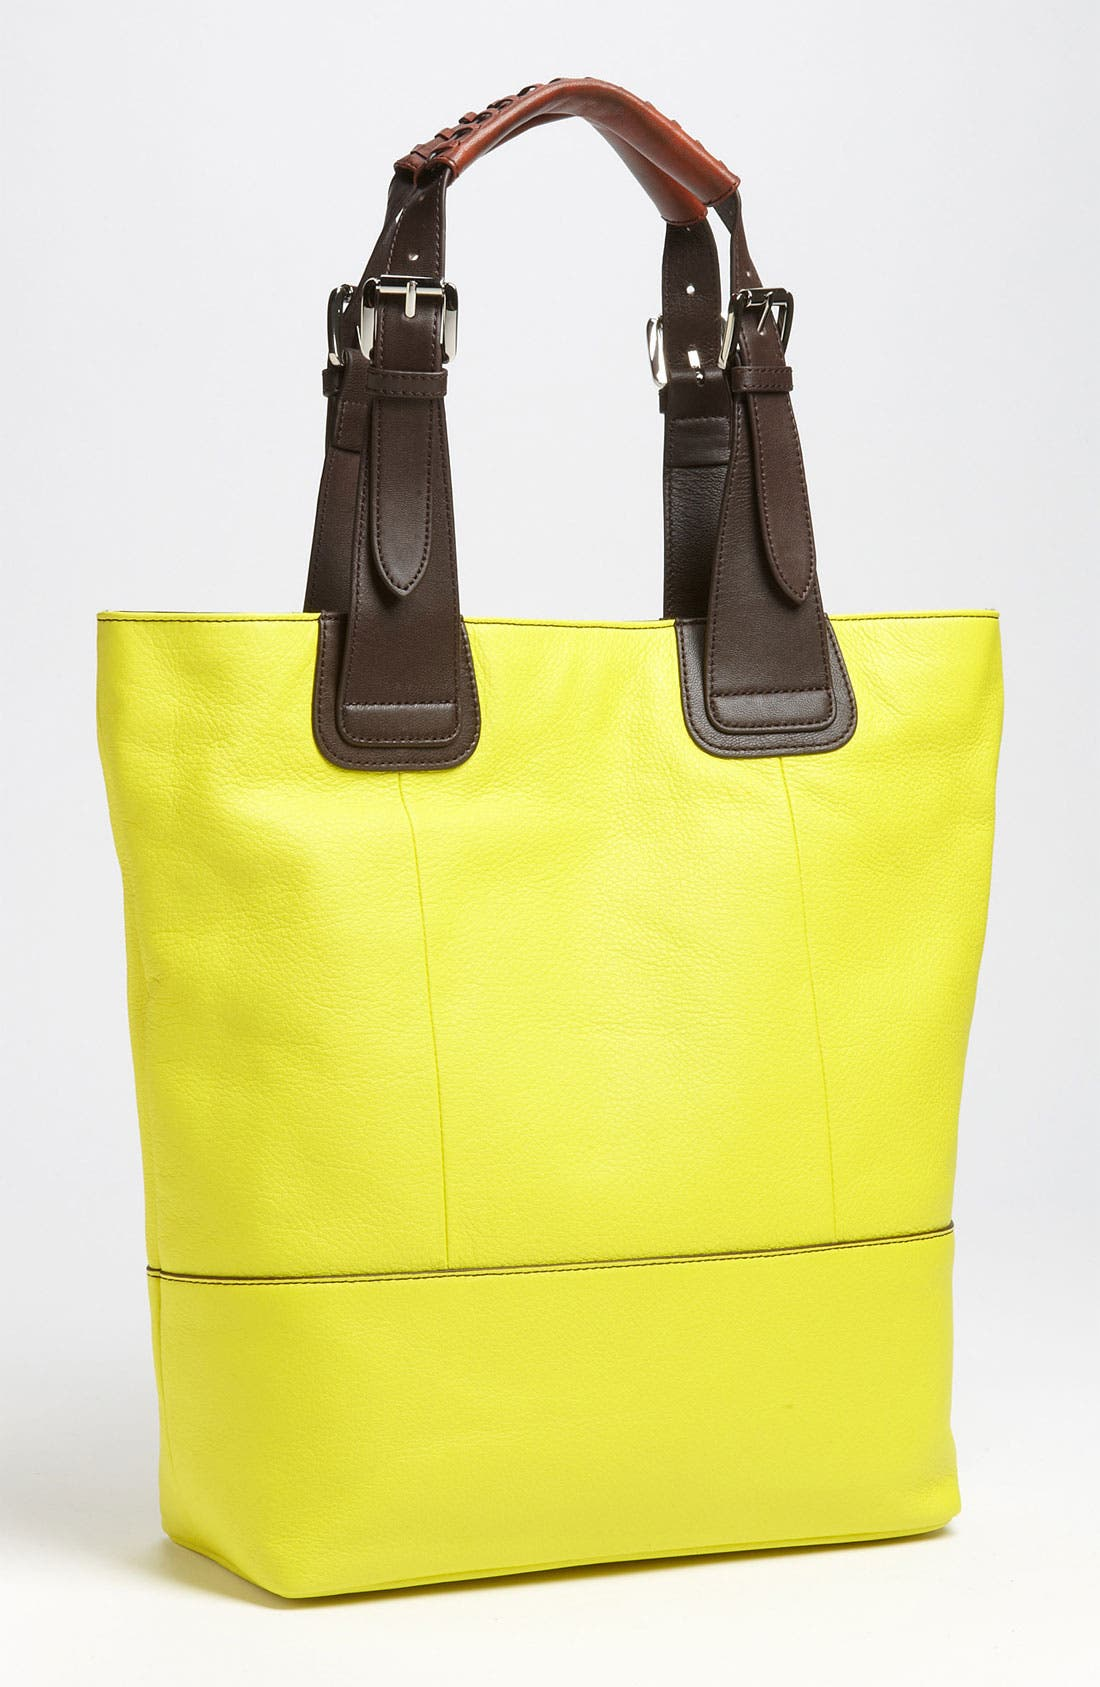 Main Image - Steven by Steve Madden Leather Tote